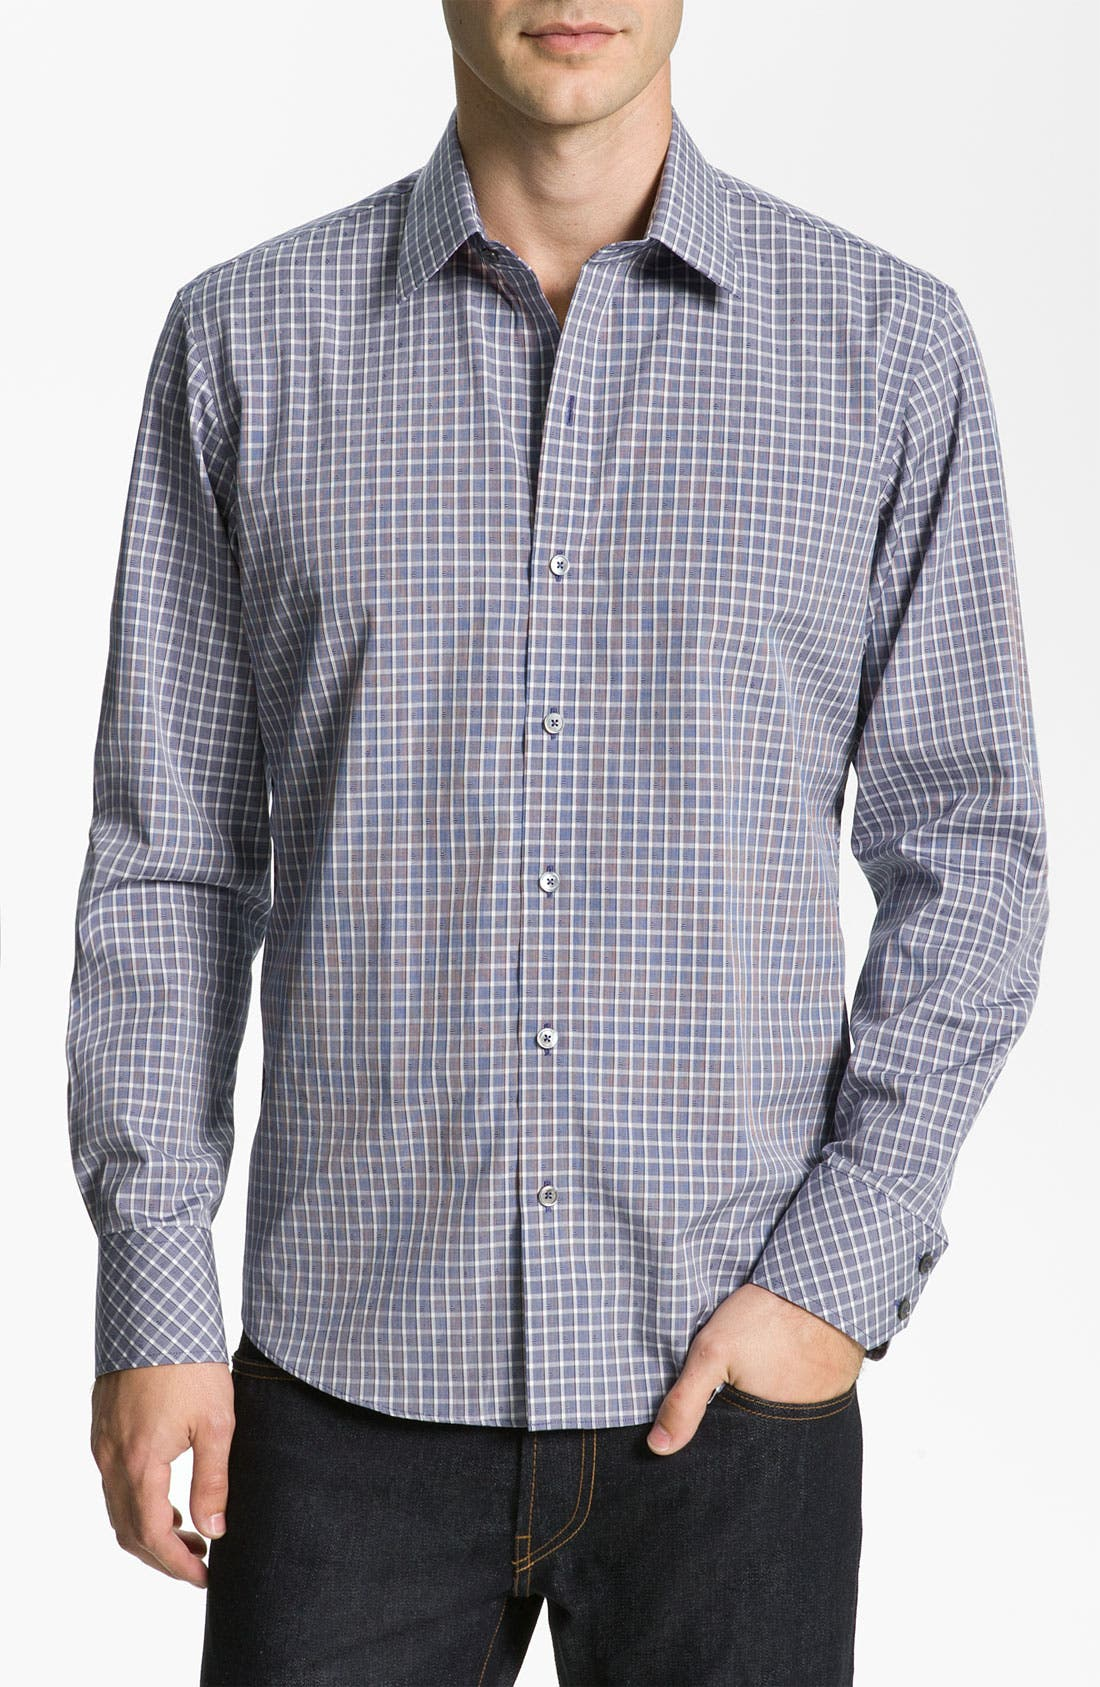 Alternate Image 1 Selected - Zachary Prell 'Foster' Sport Shirt